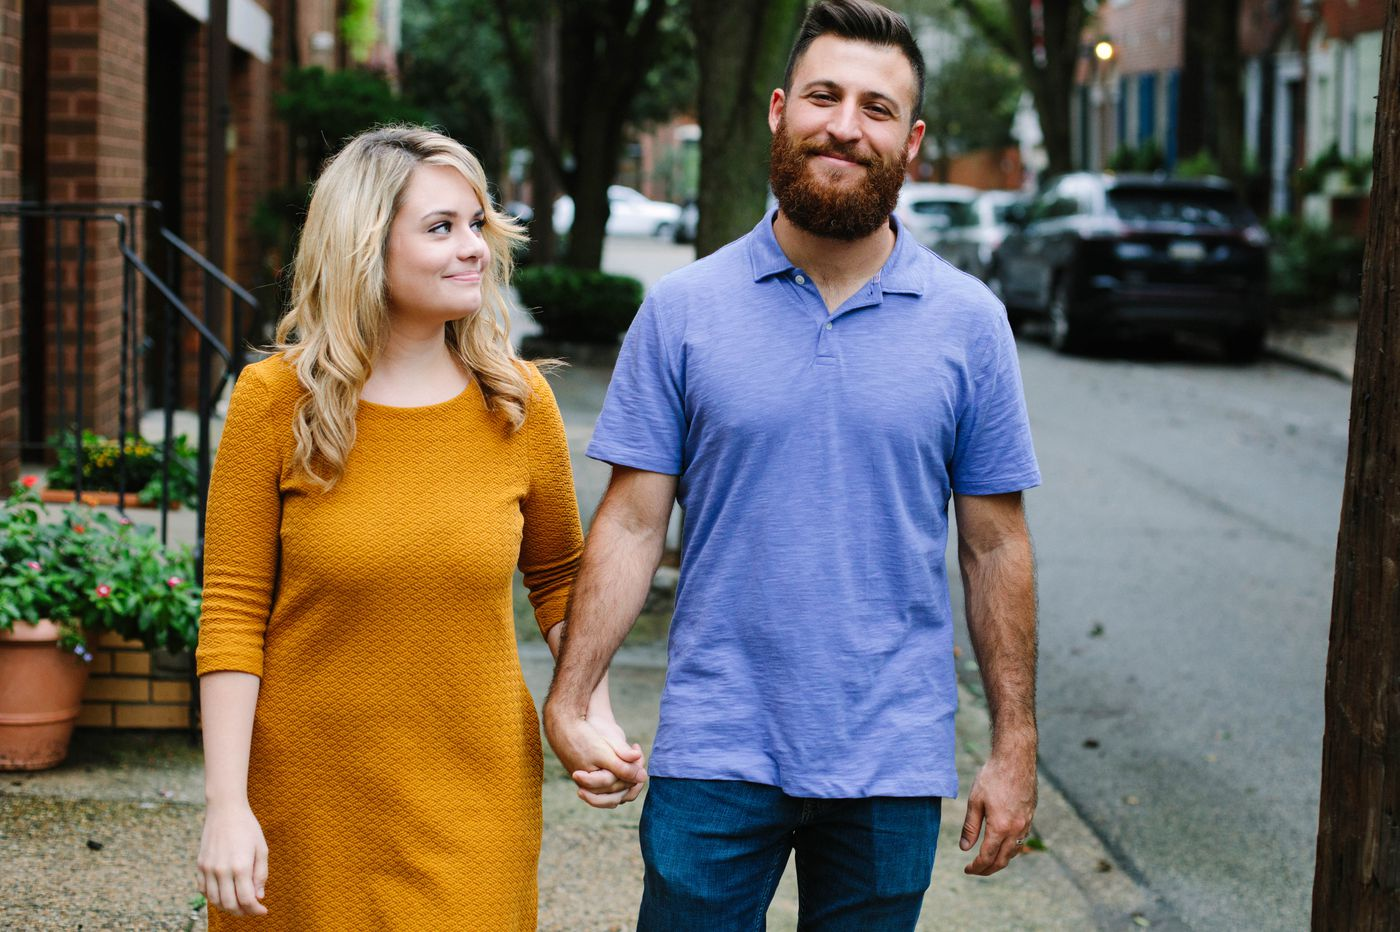 'Married at First Sight' in Philly takes in the sights, from Club Risque to the cigar lounge